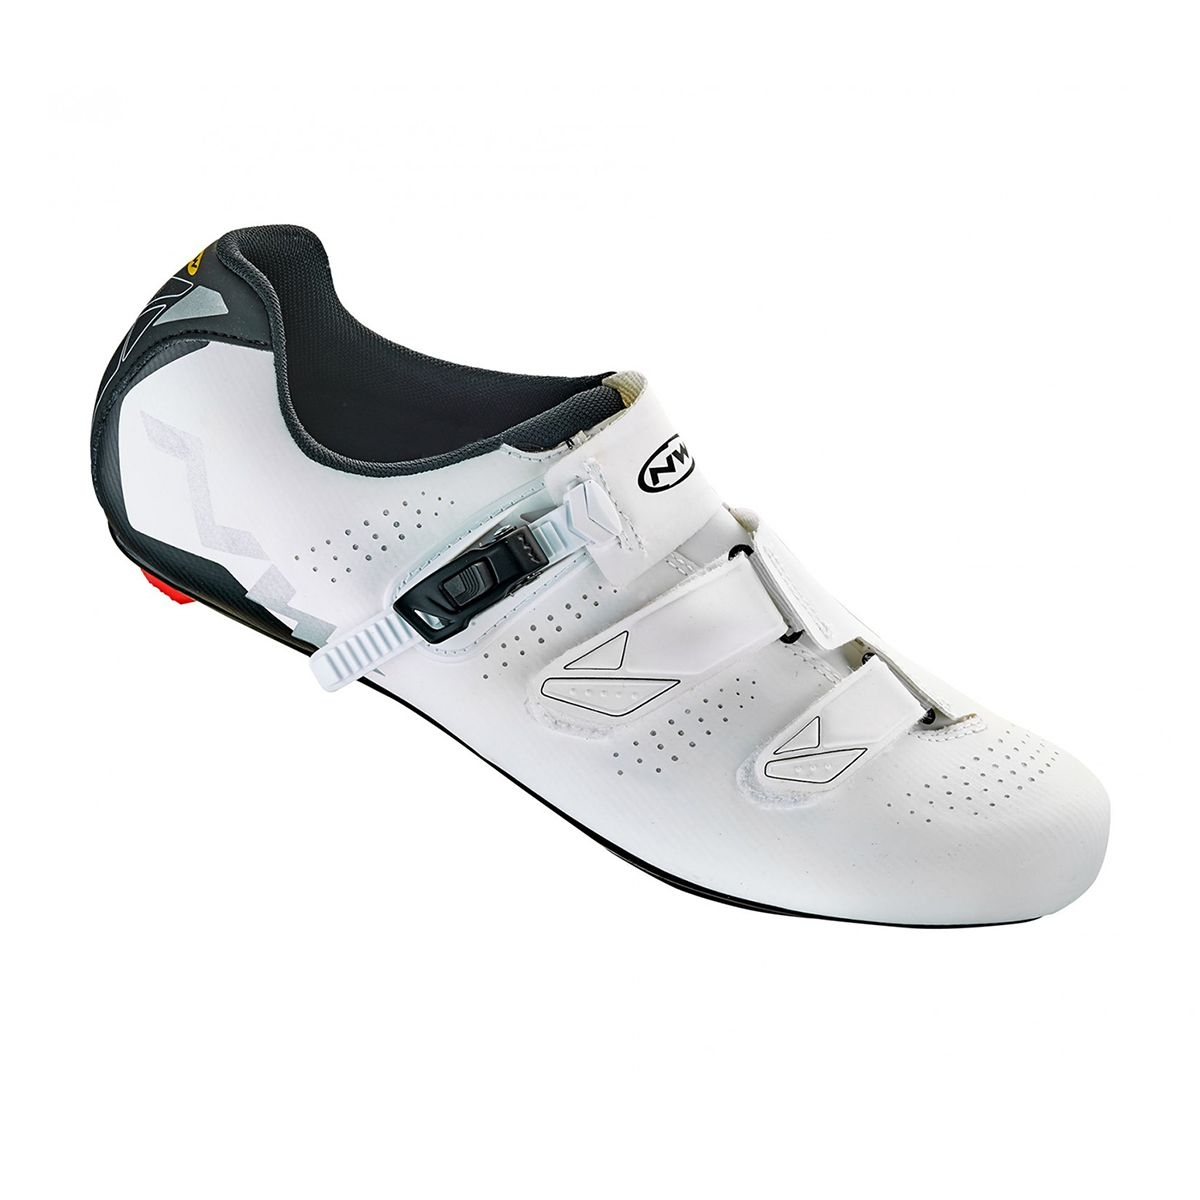 NORTHWAVE Man road cycling shoes PHANTOM 2 SRS white/anthracite